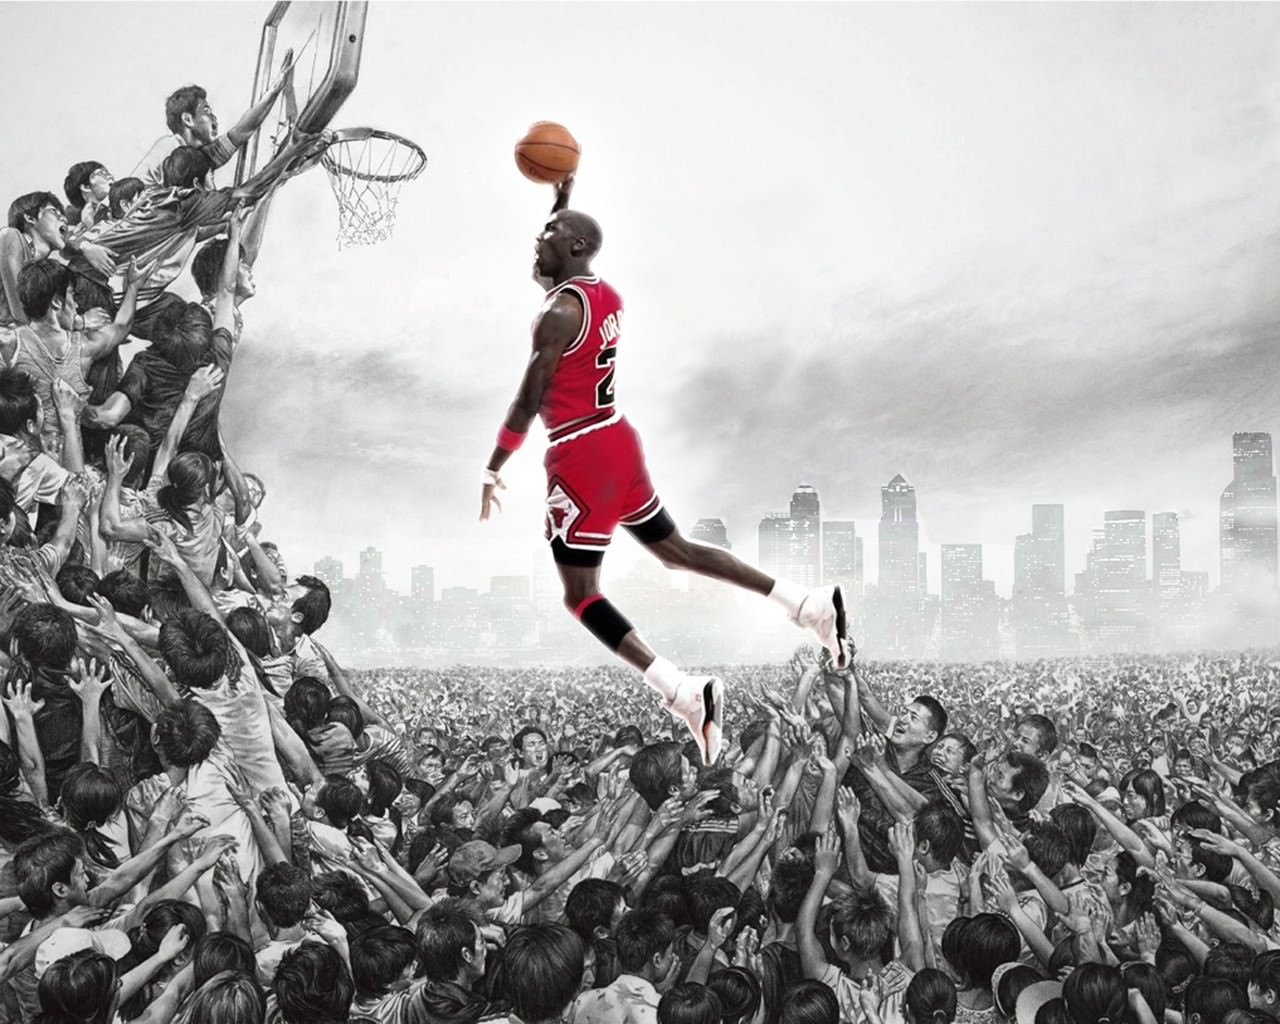 Awesome Dunk Background